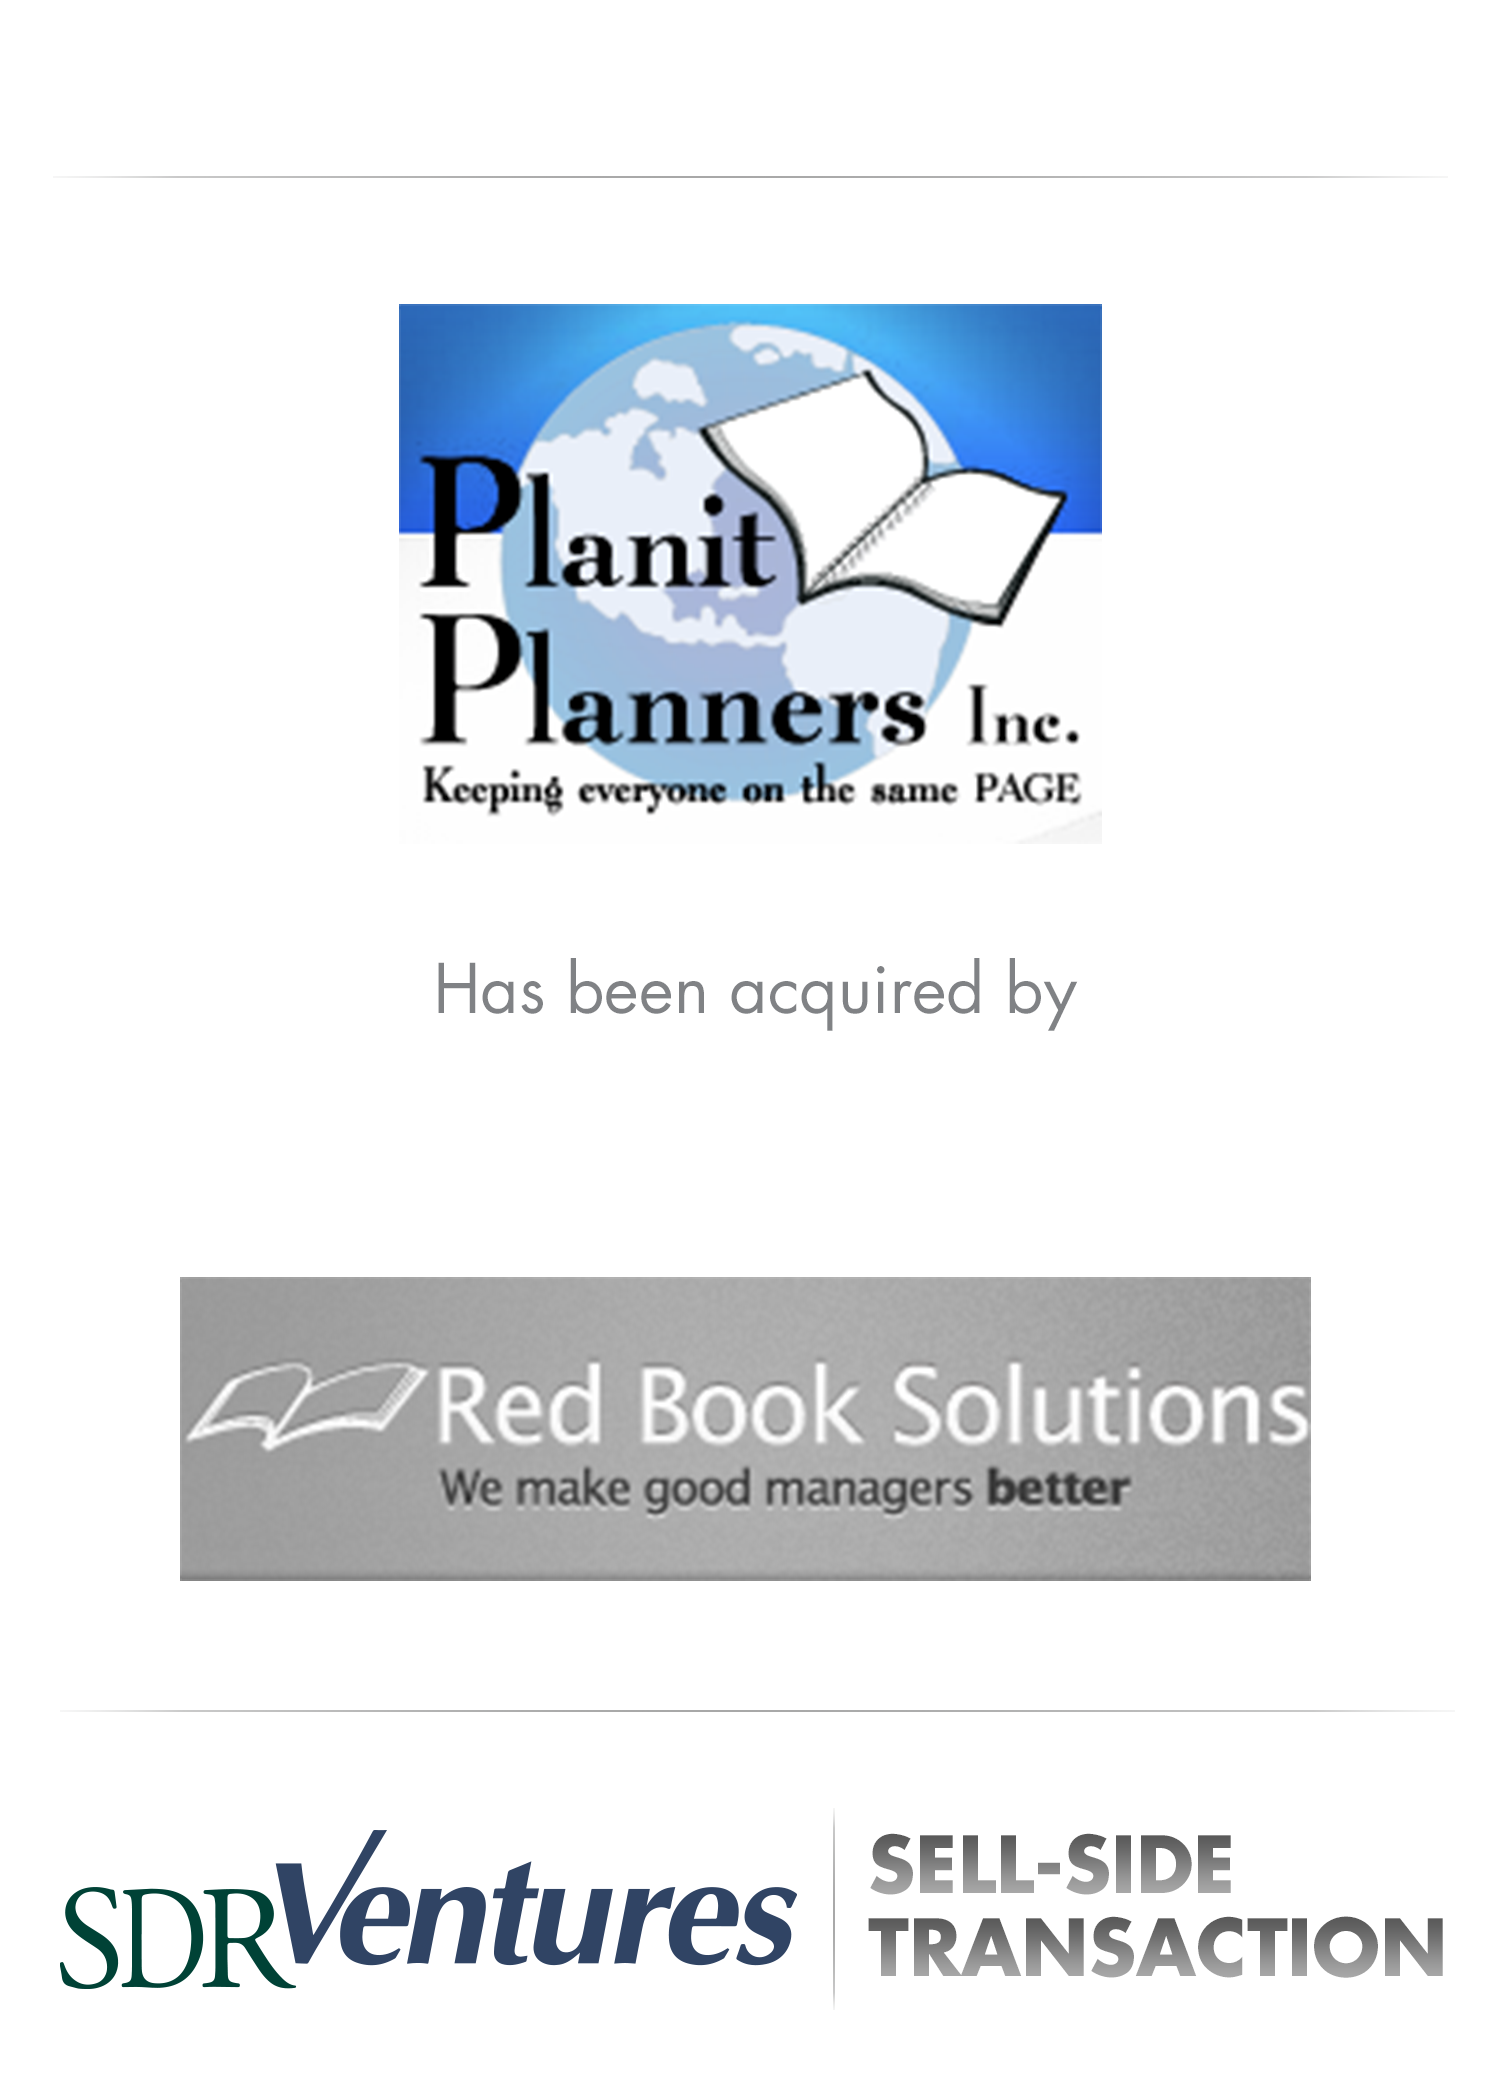 Planit-Planners-Sell-Side